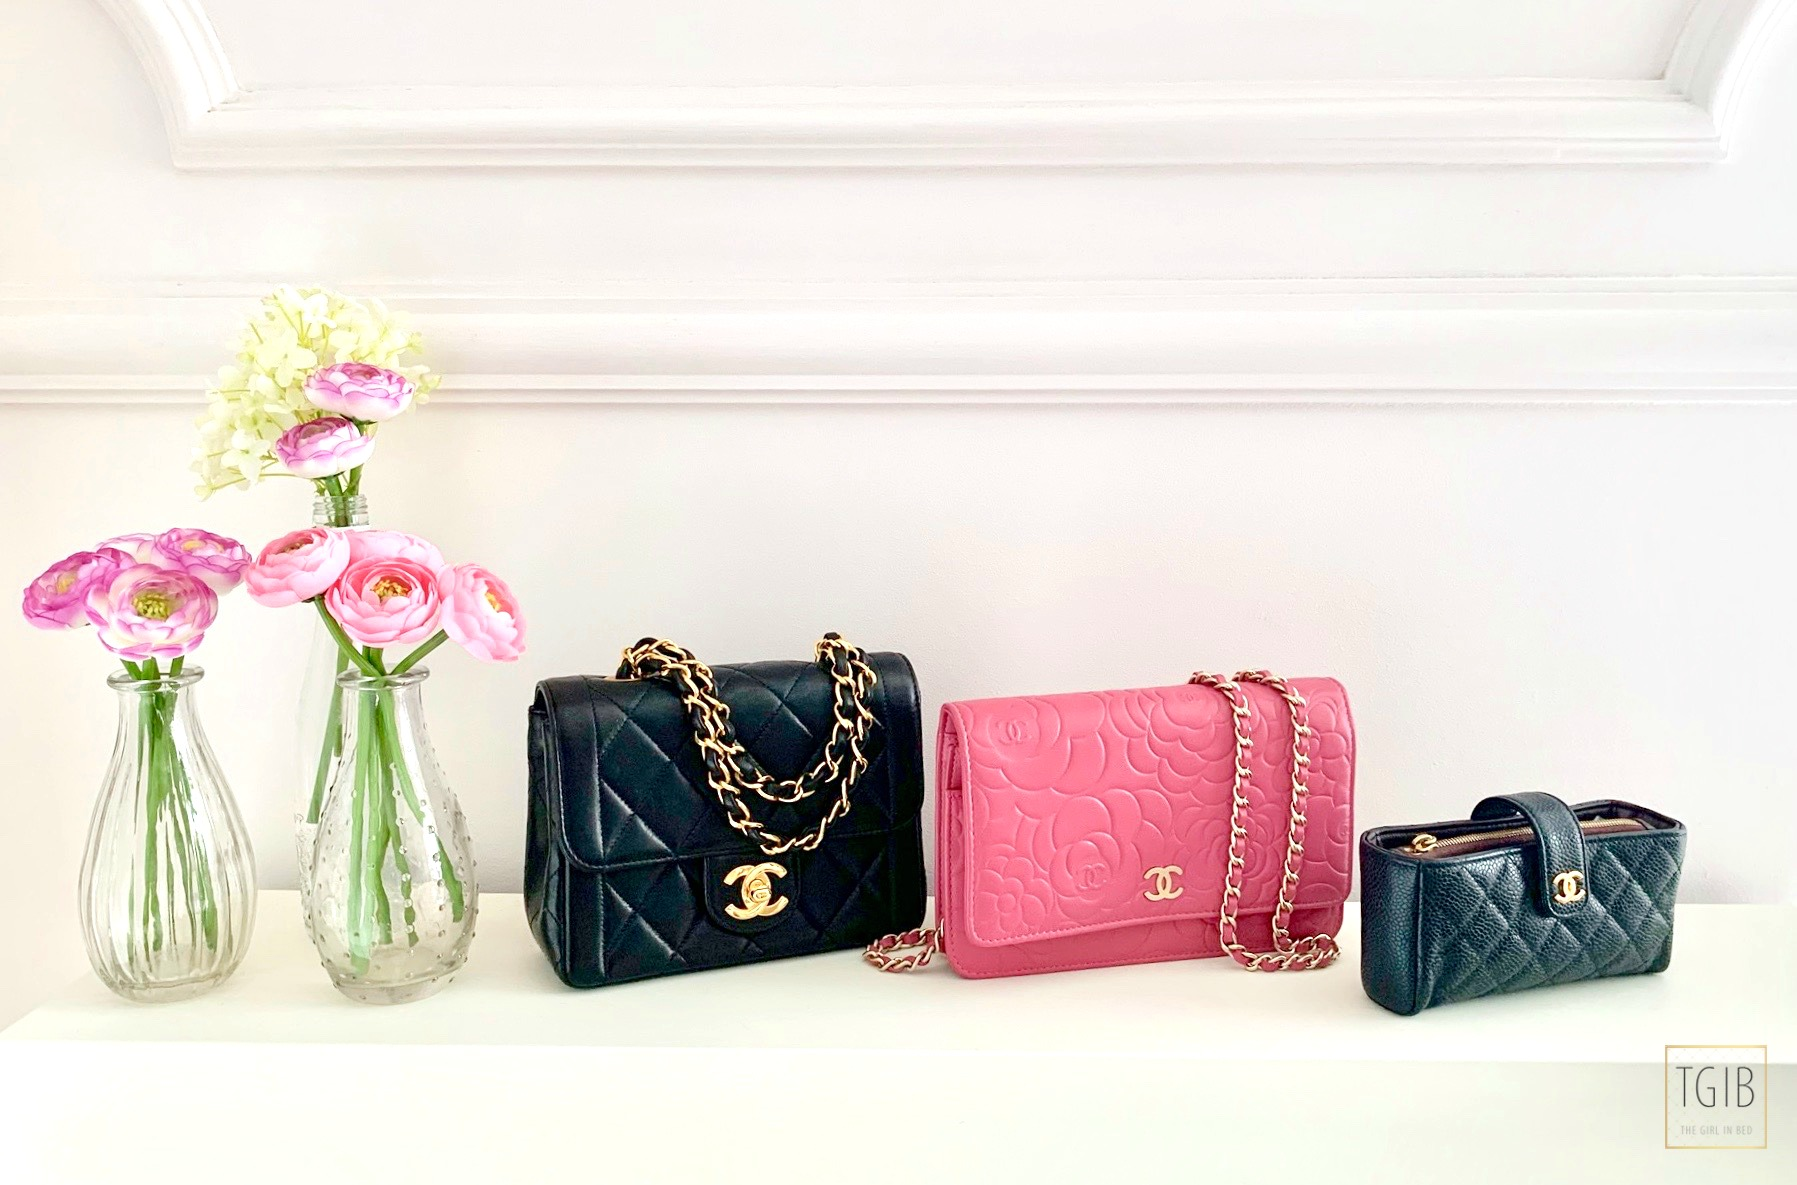 Chanel bags with flowers